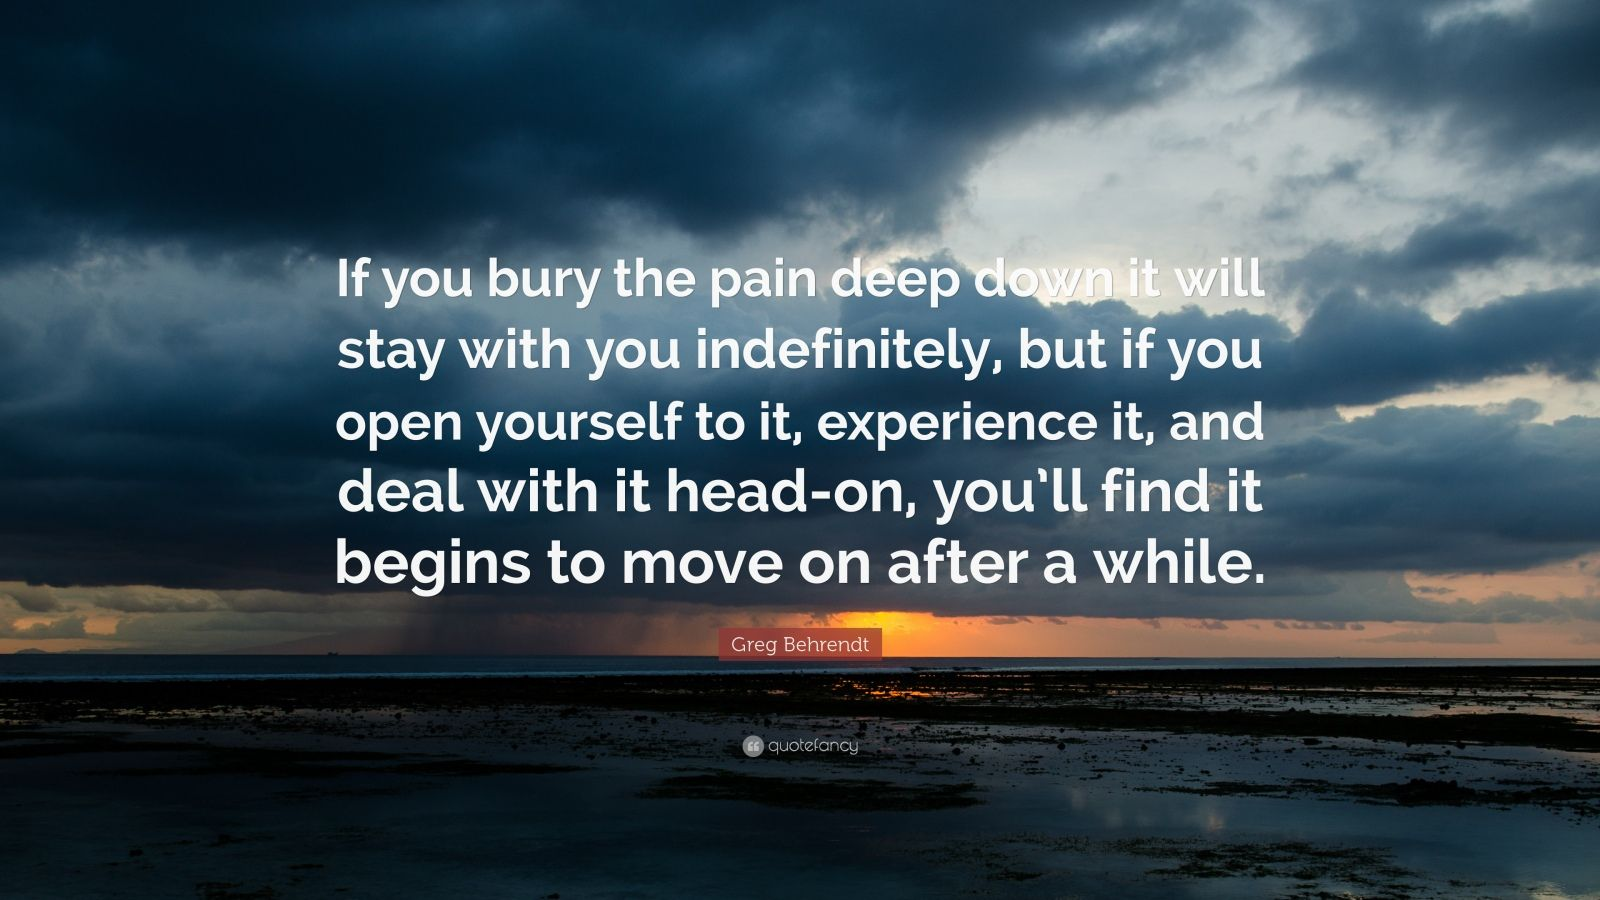 Deep Wallpaper Quotes Greg Behrendt Quote If You Bury The Pain Deep Down It